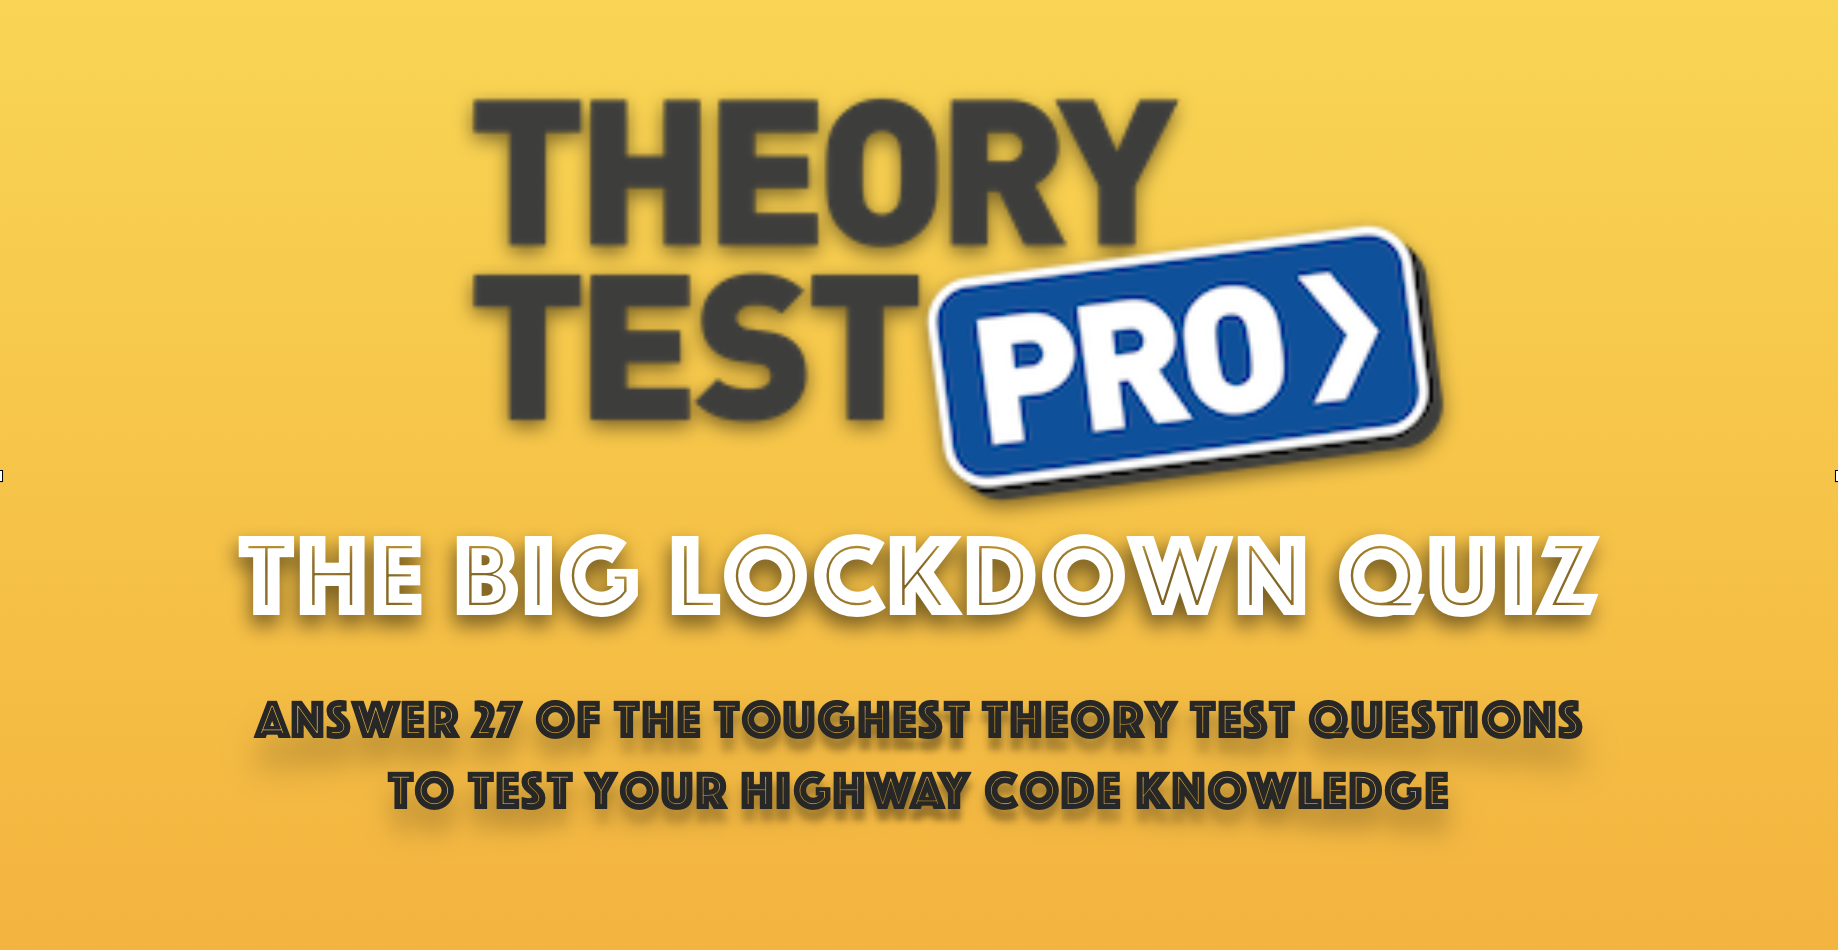 The Big Lockdown Quiz: Answer the 27 Toughest Theory Test Questions